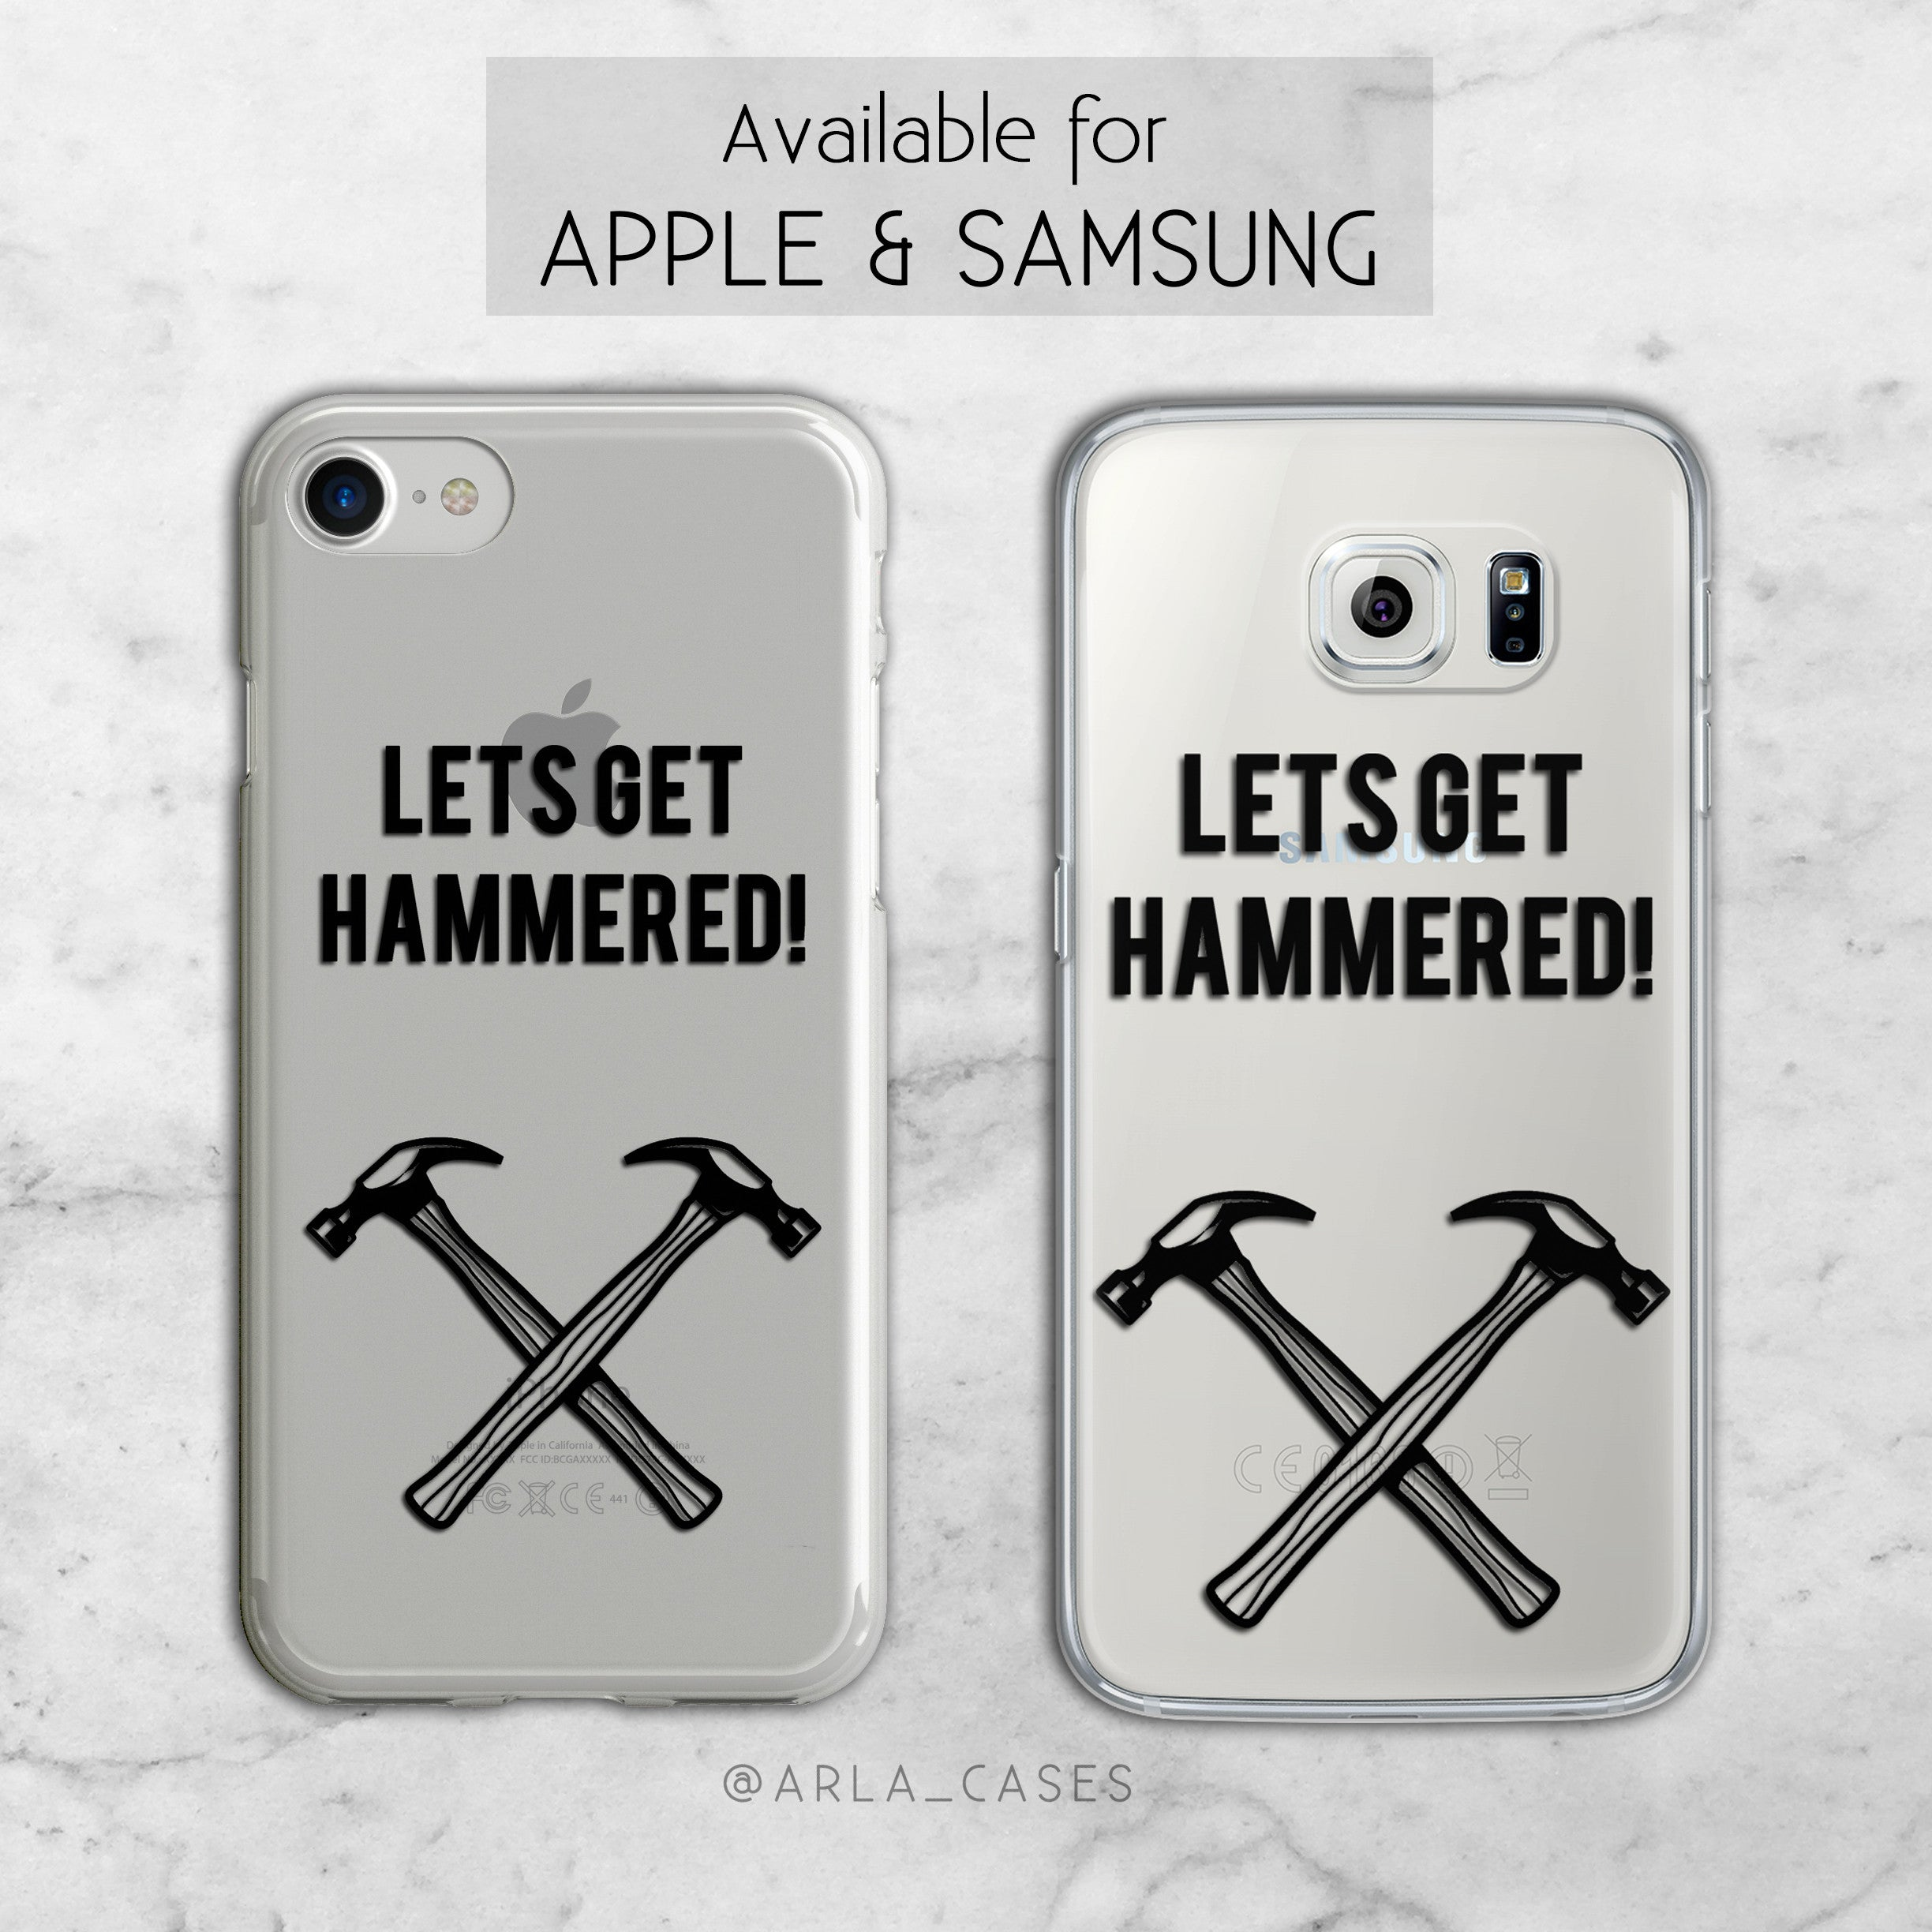 Let's Get Hammered TPU Phone Case for iPhone and Galaxy